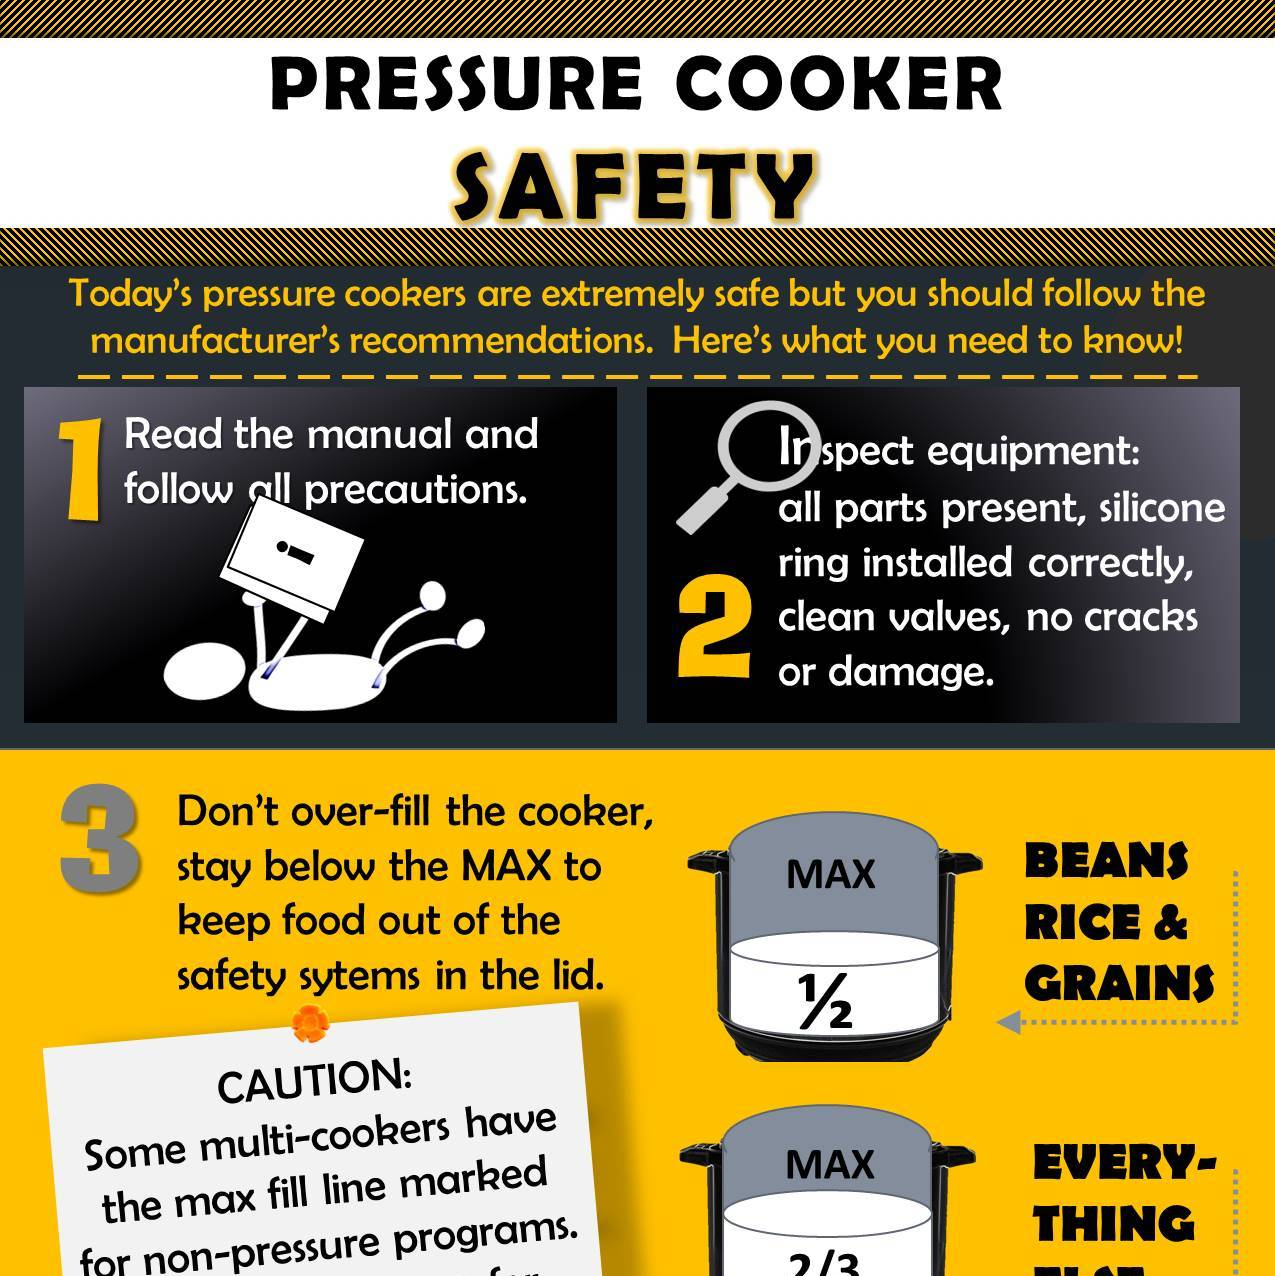 how to use pressure cooker safely